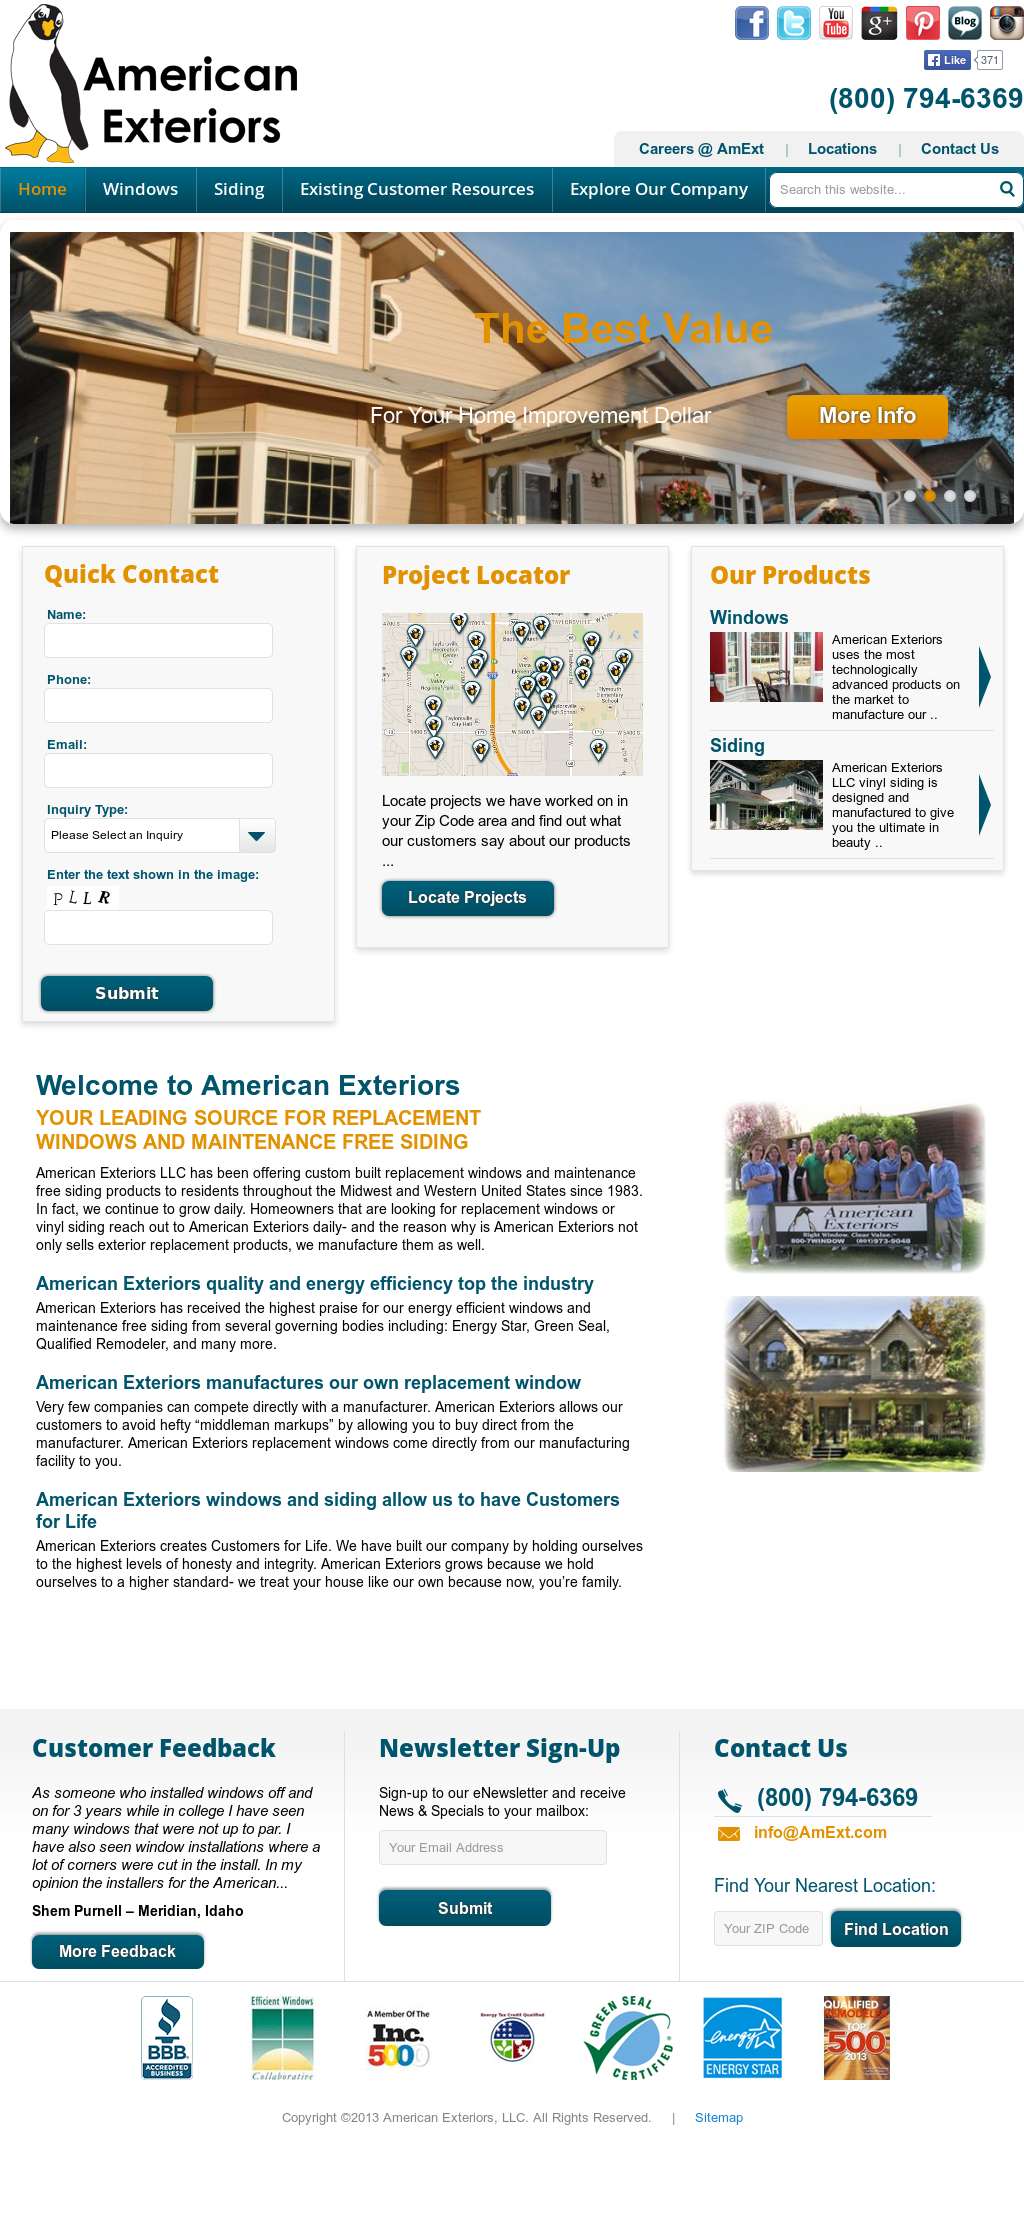 American Exteriors Competitors, Revenue and Employees - Owler ...